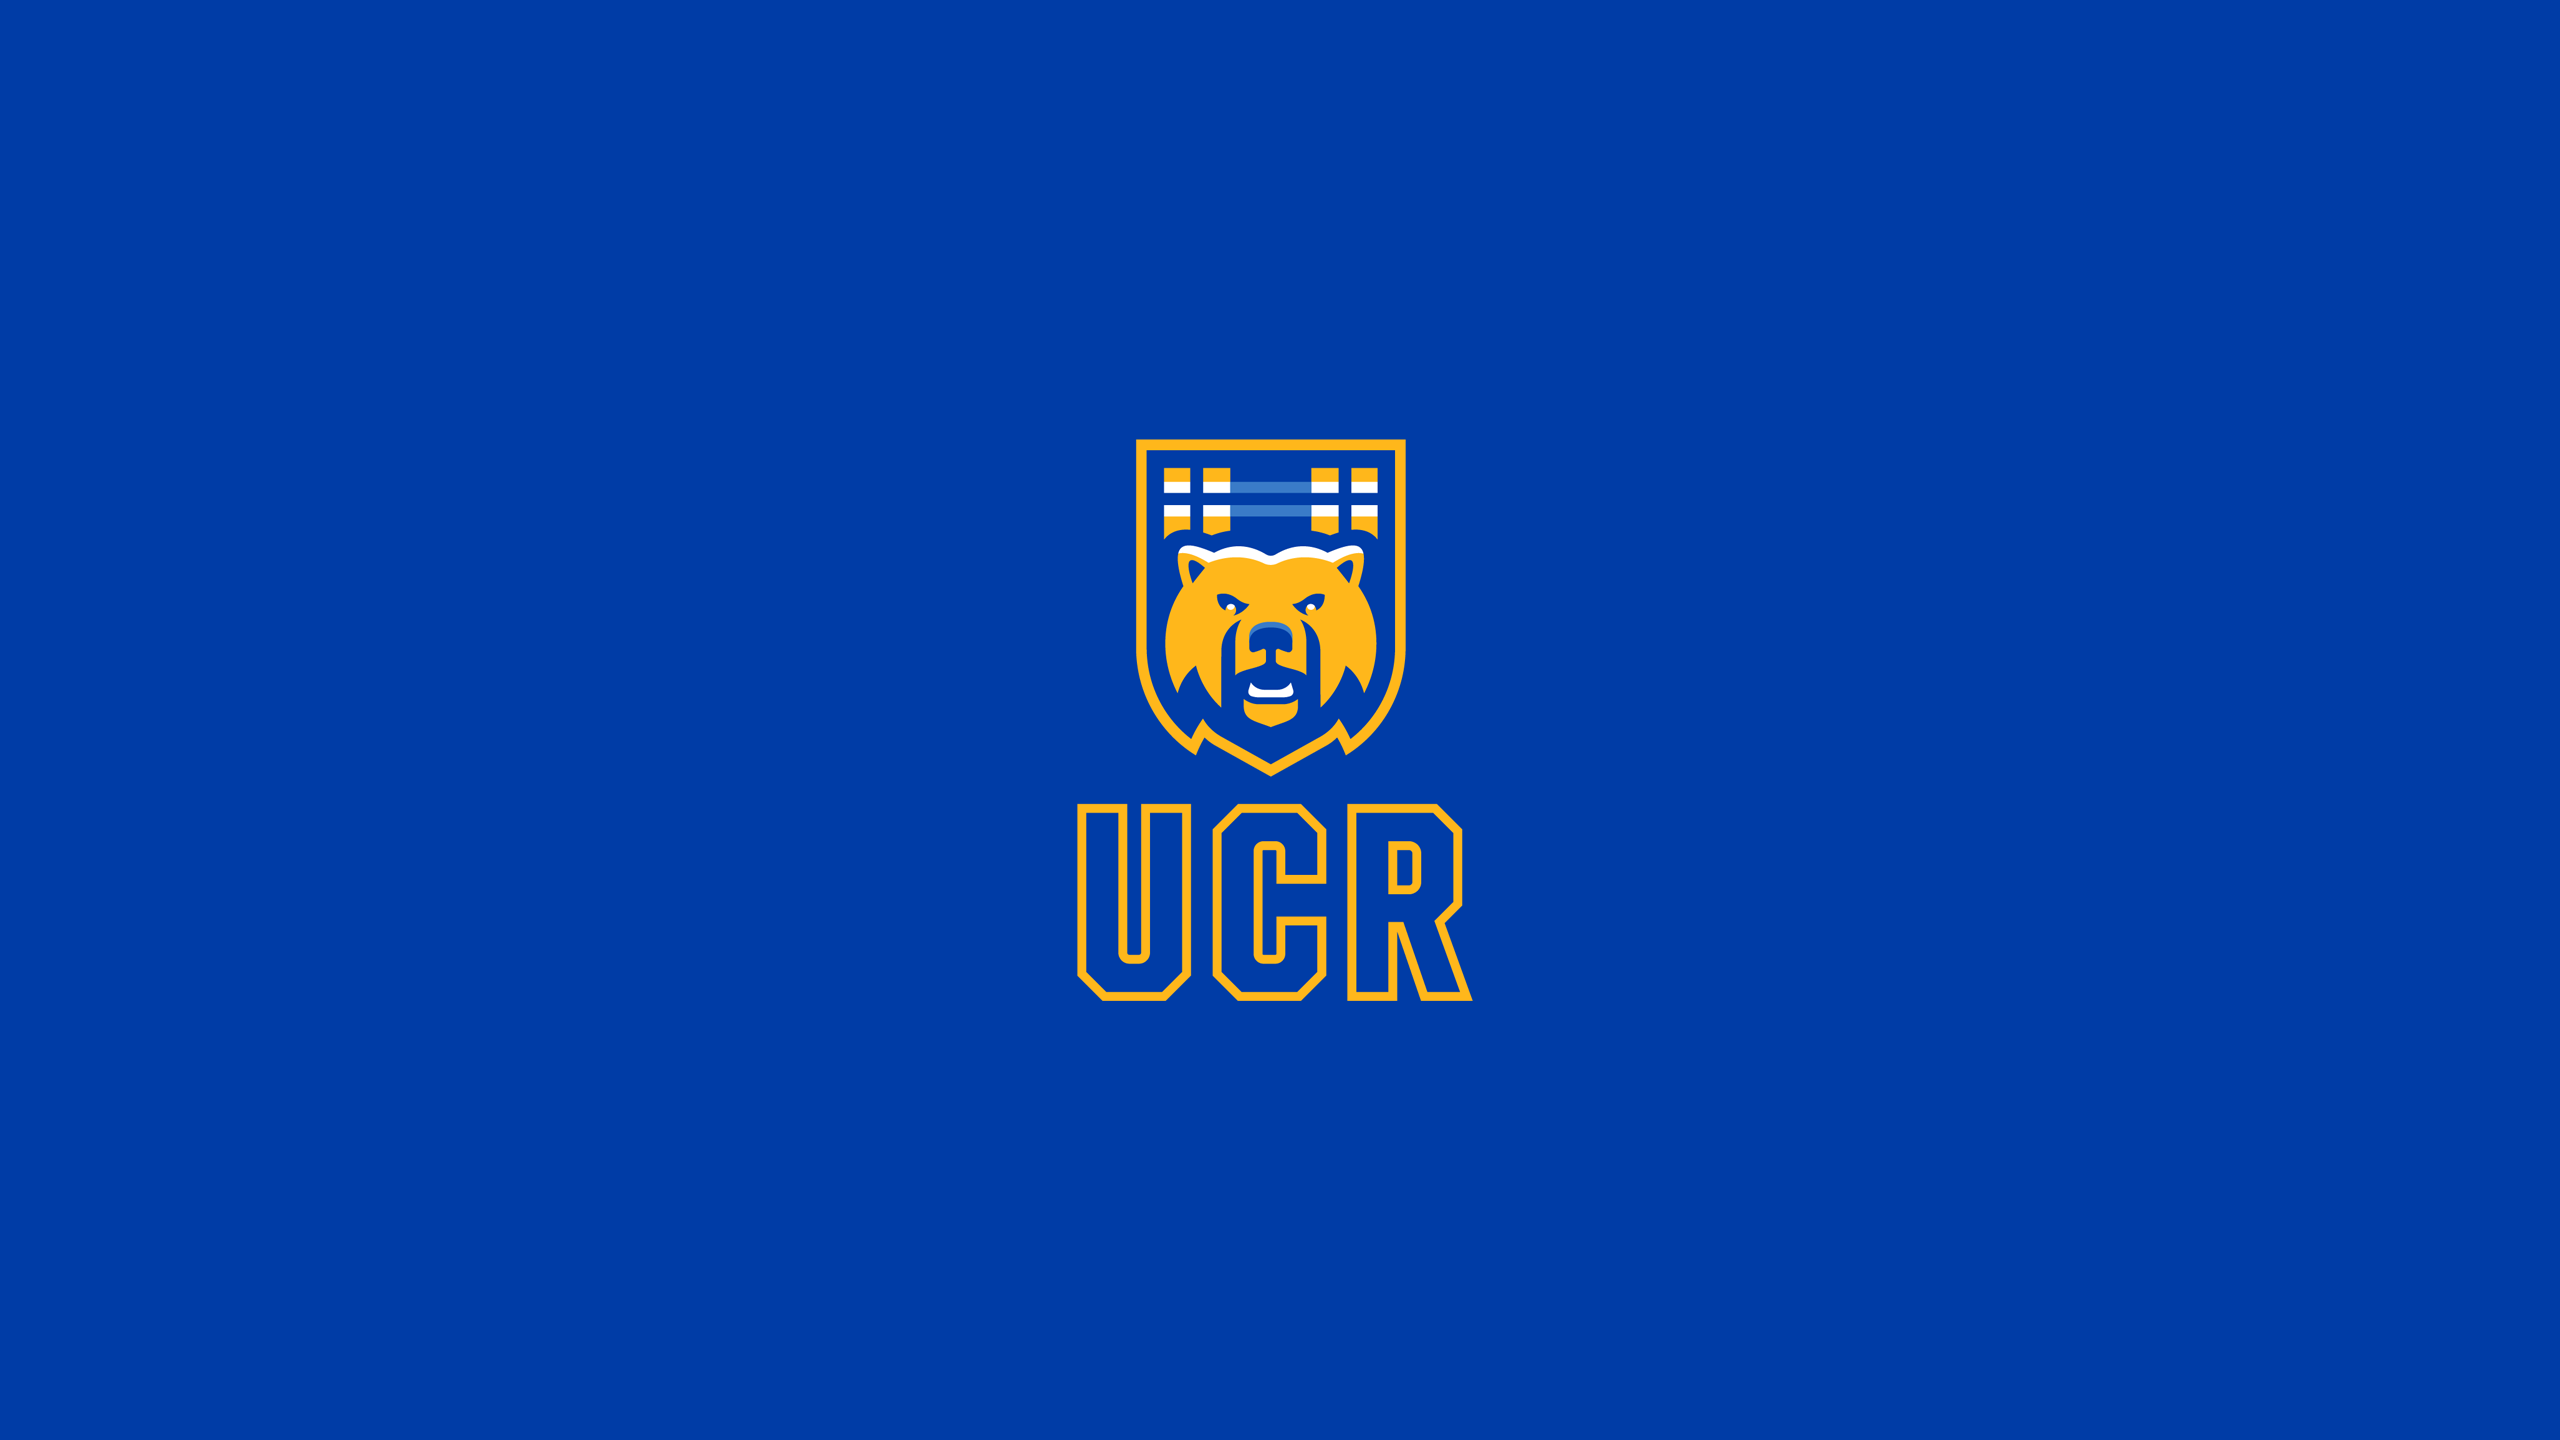 University of California - Riverside Highlanders